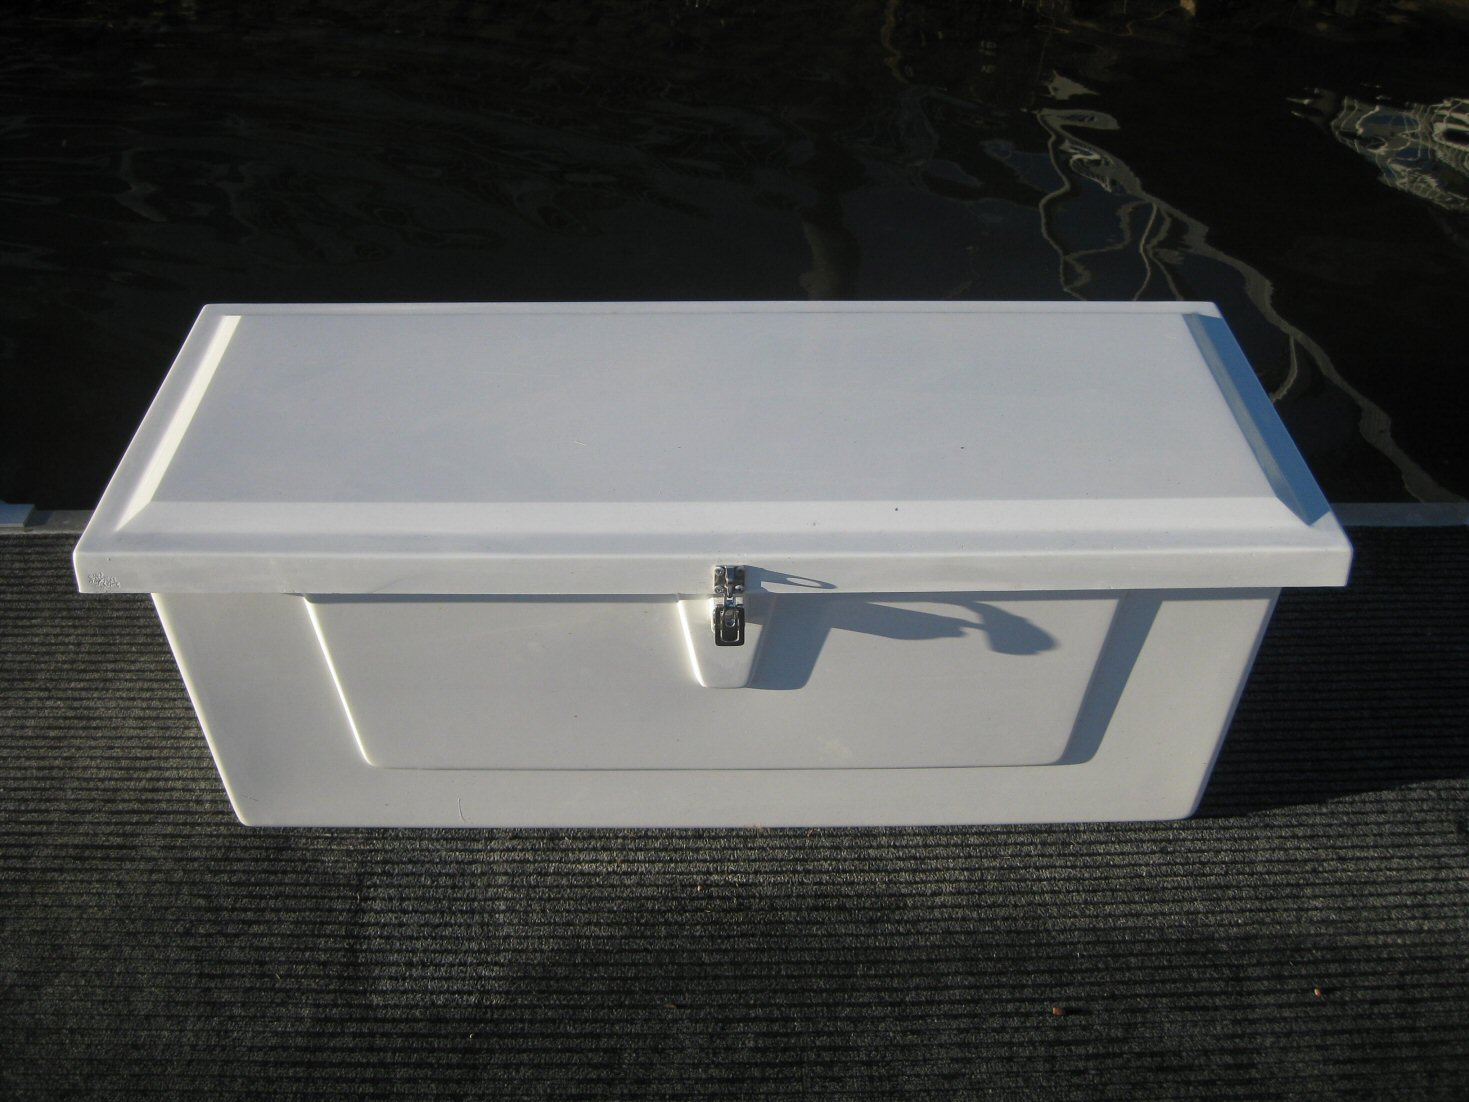 Fibreglass 4 Leisure - pool storage box downsized for emailing